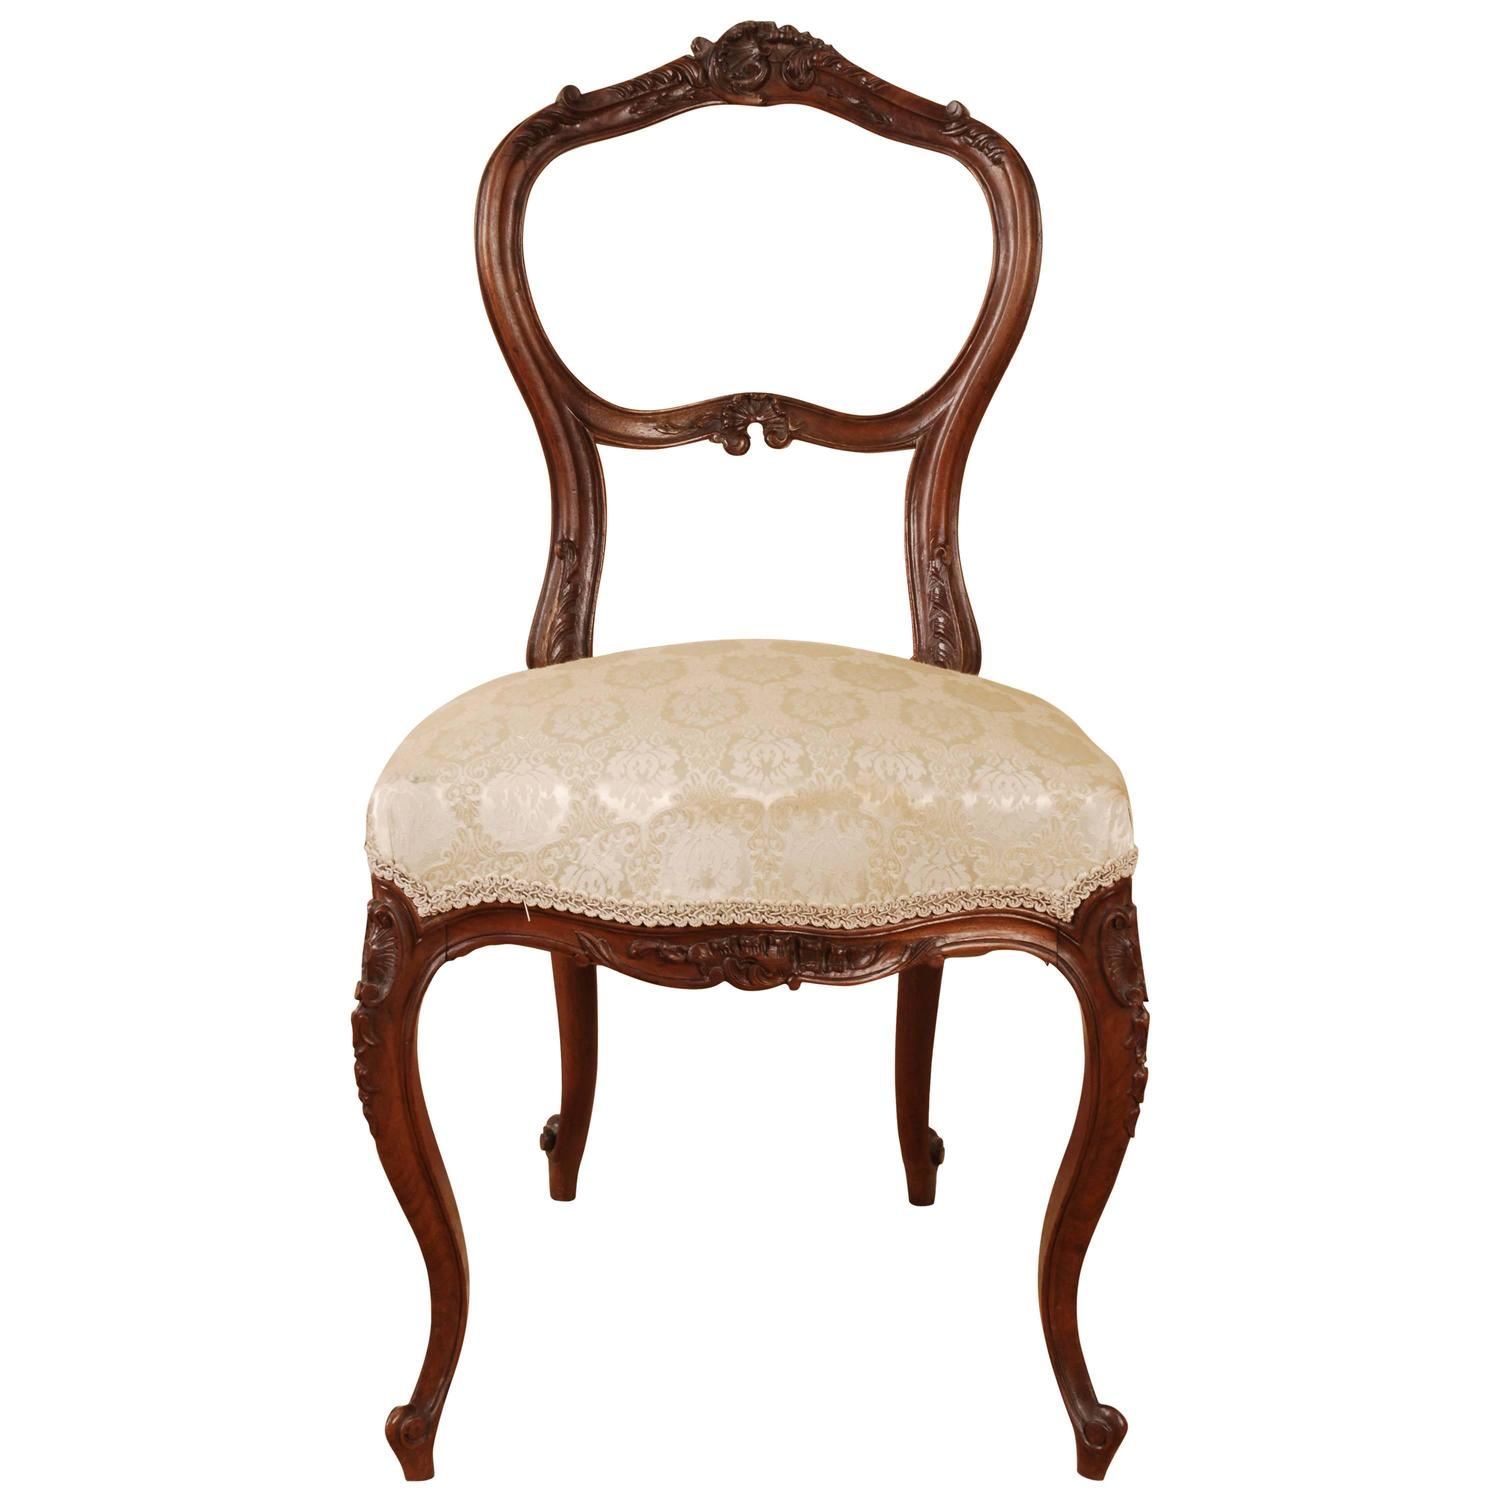 19th Century Louis XVI or Neo Rococo Style Chair For Sale at 1stdibs